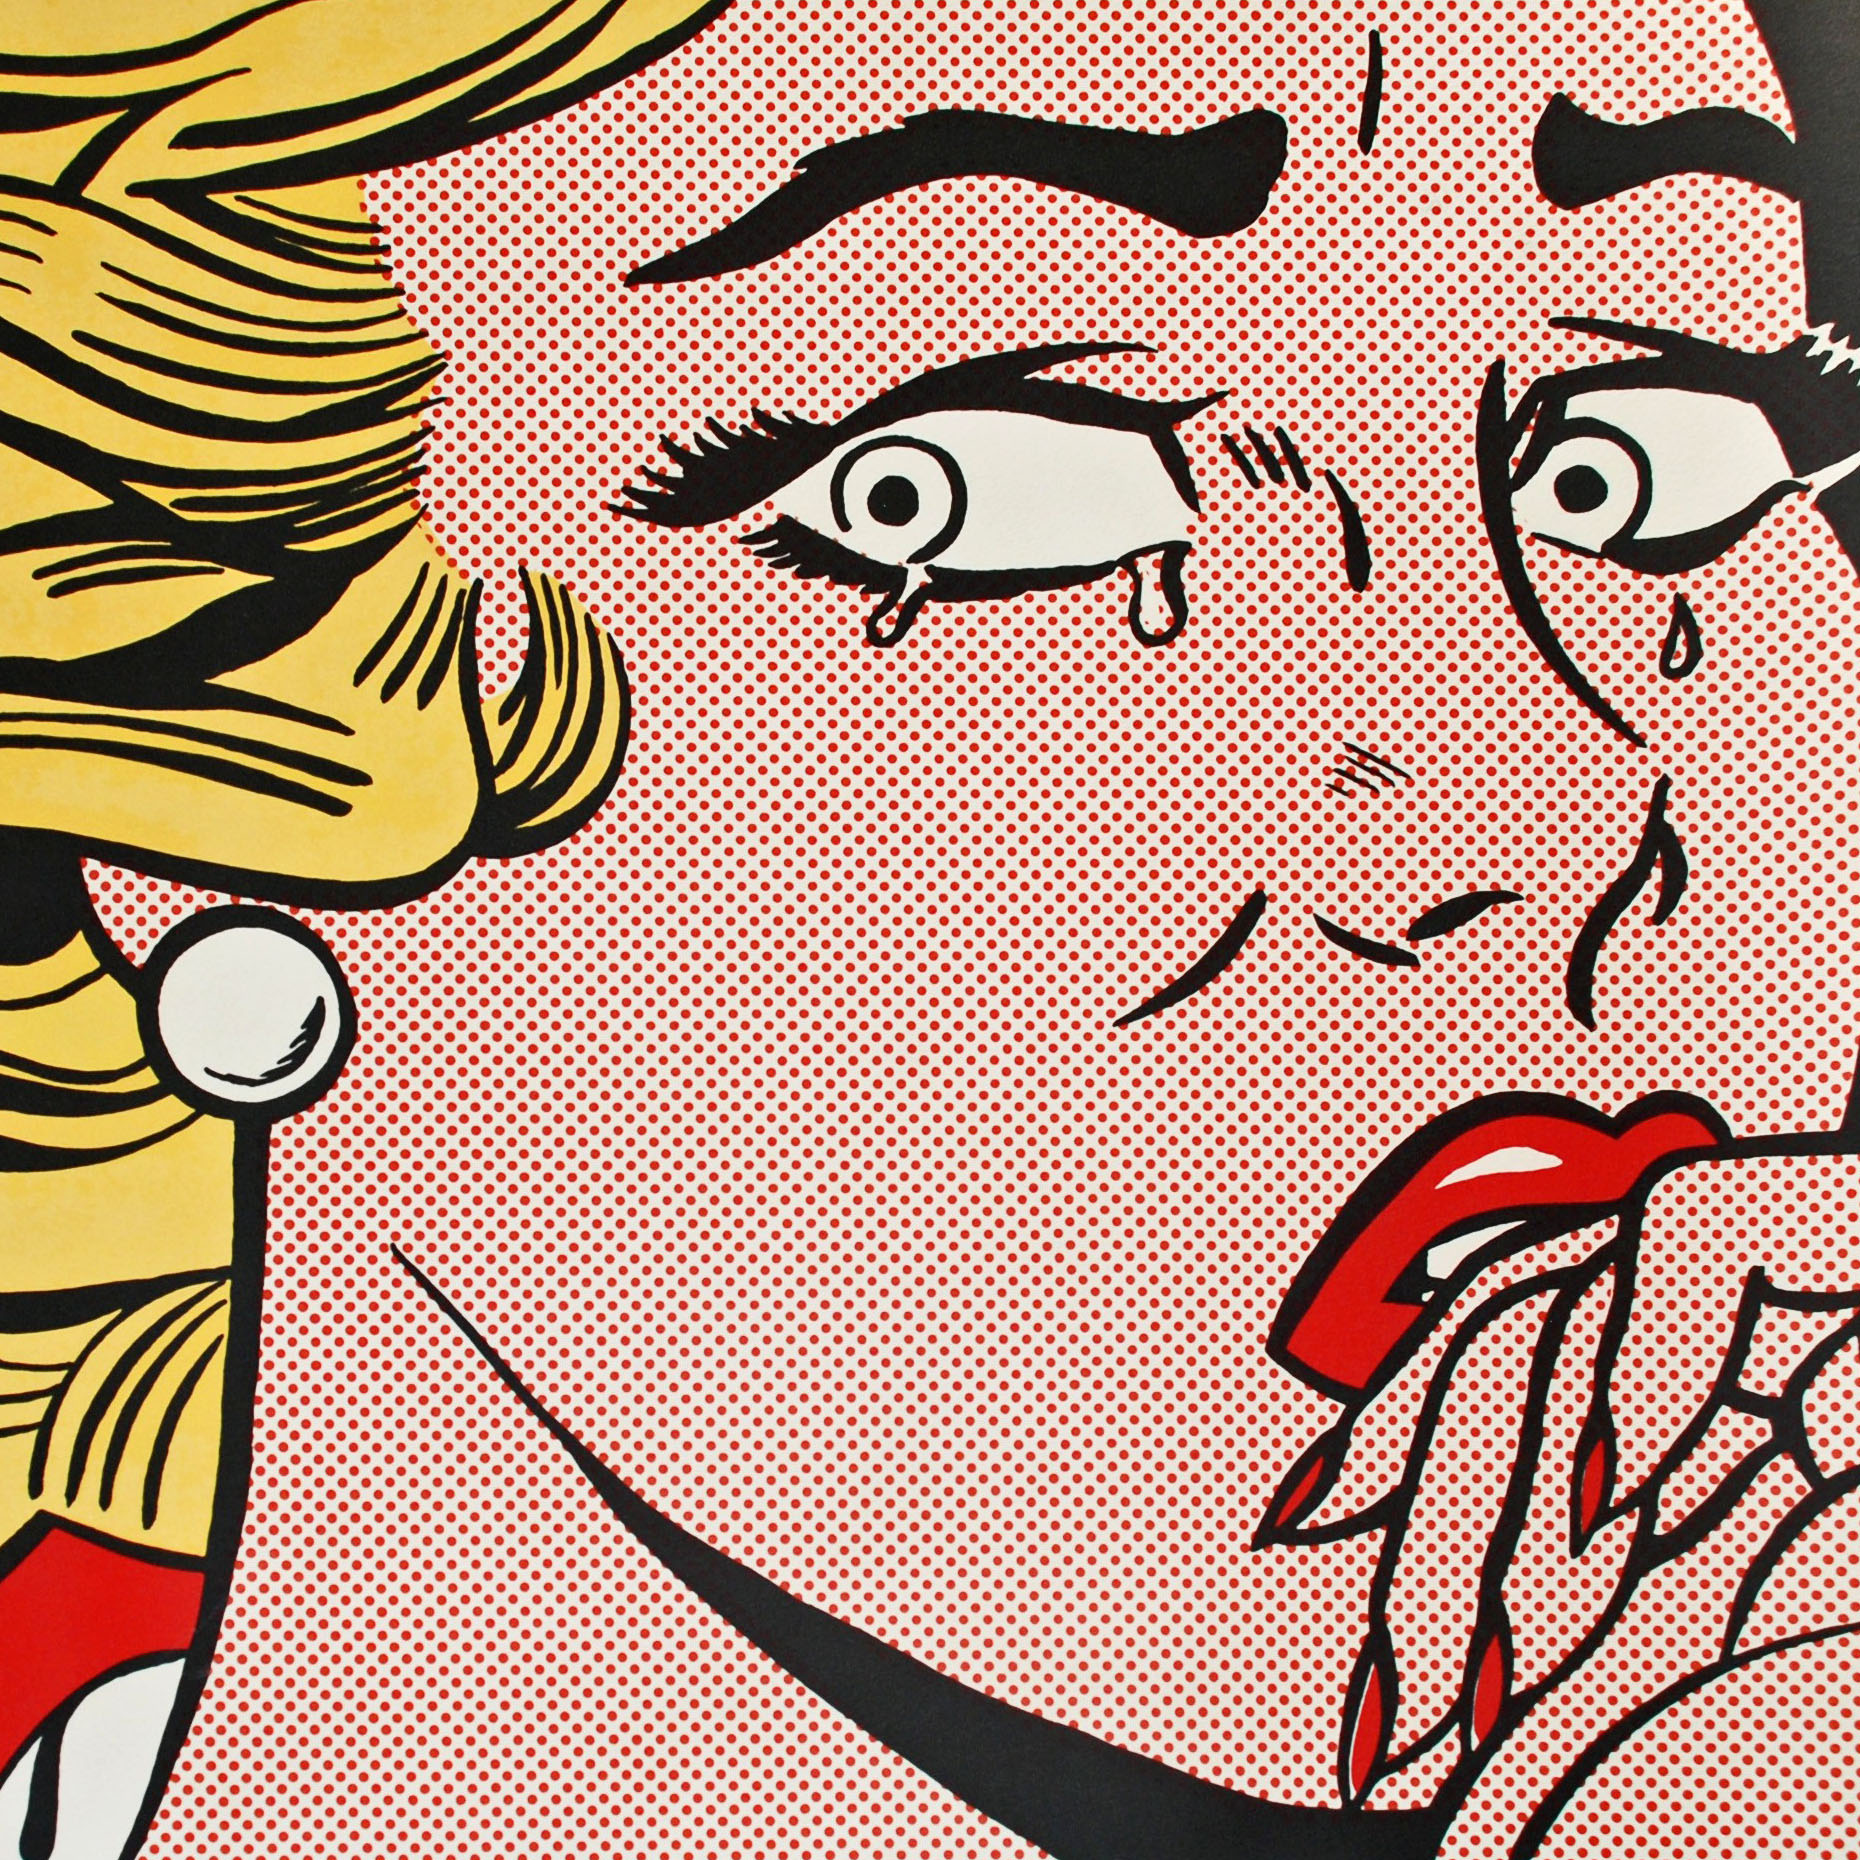 THE CRYING GIRL BY ROY LICHTENSTEIN